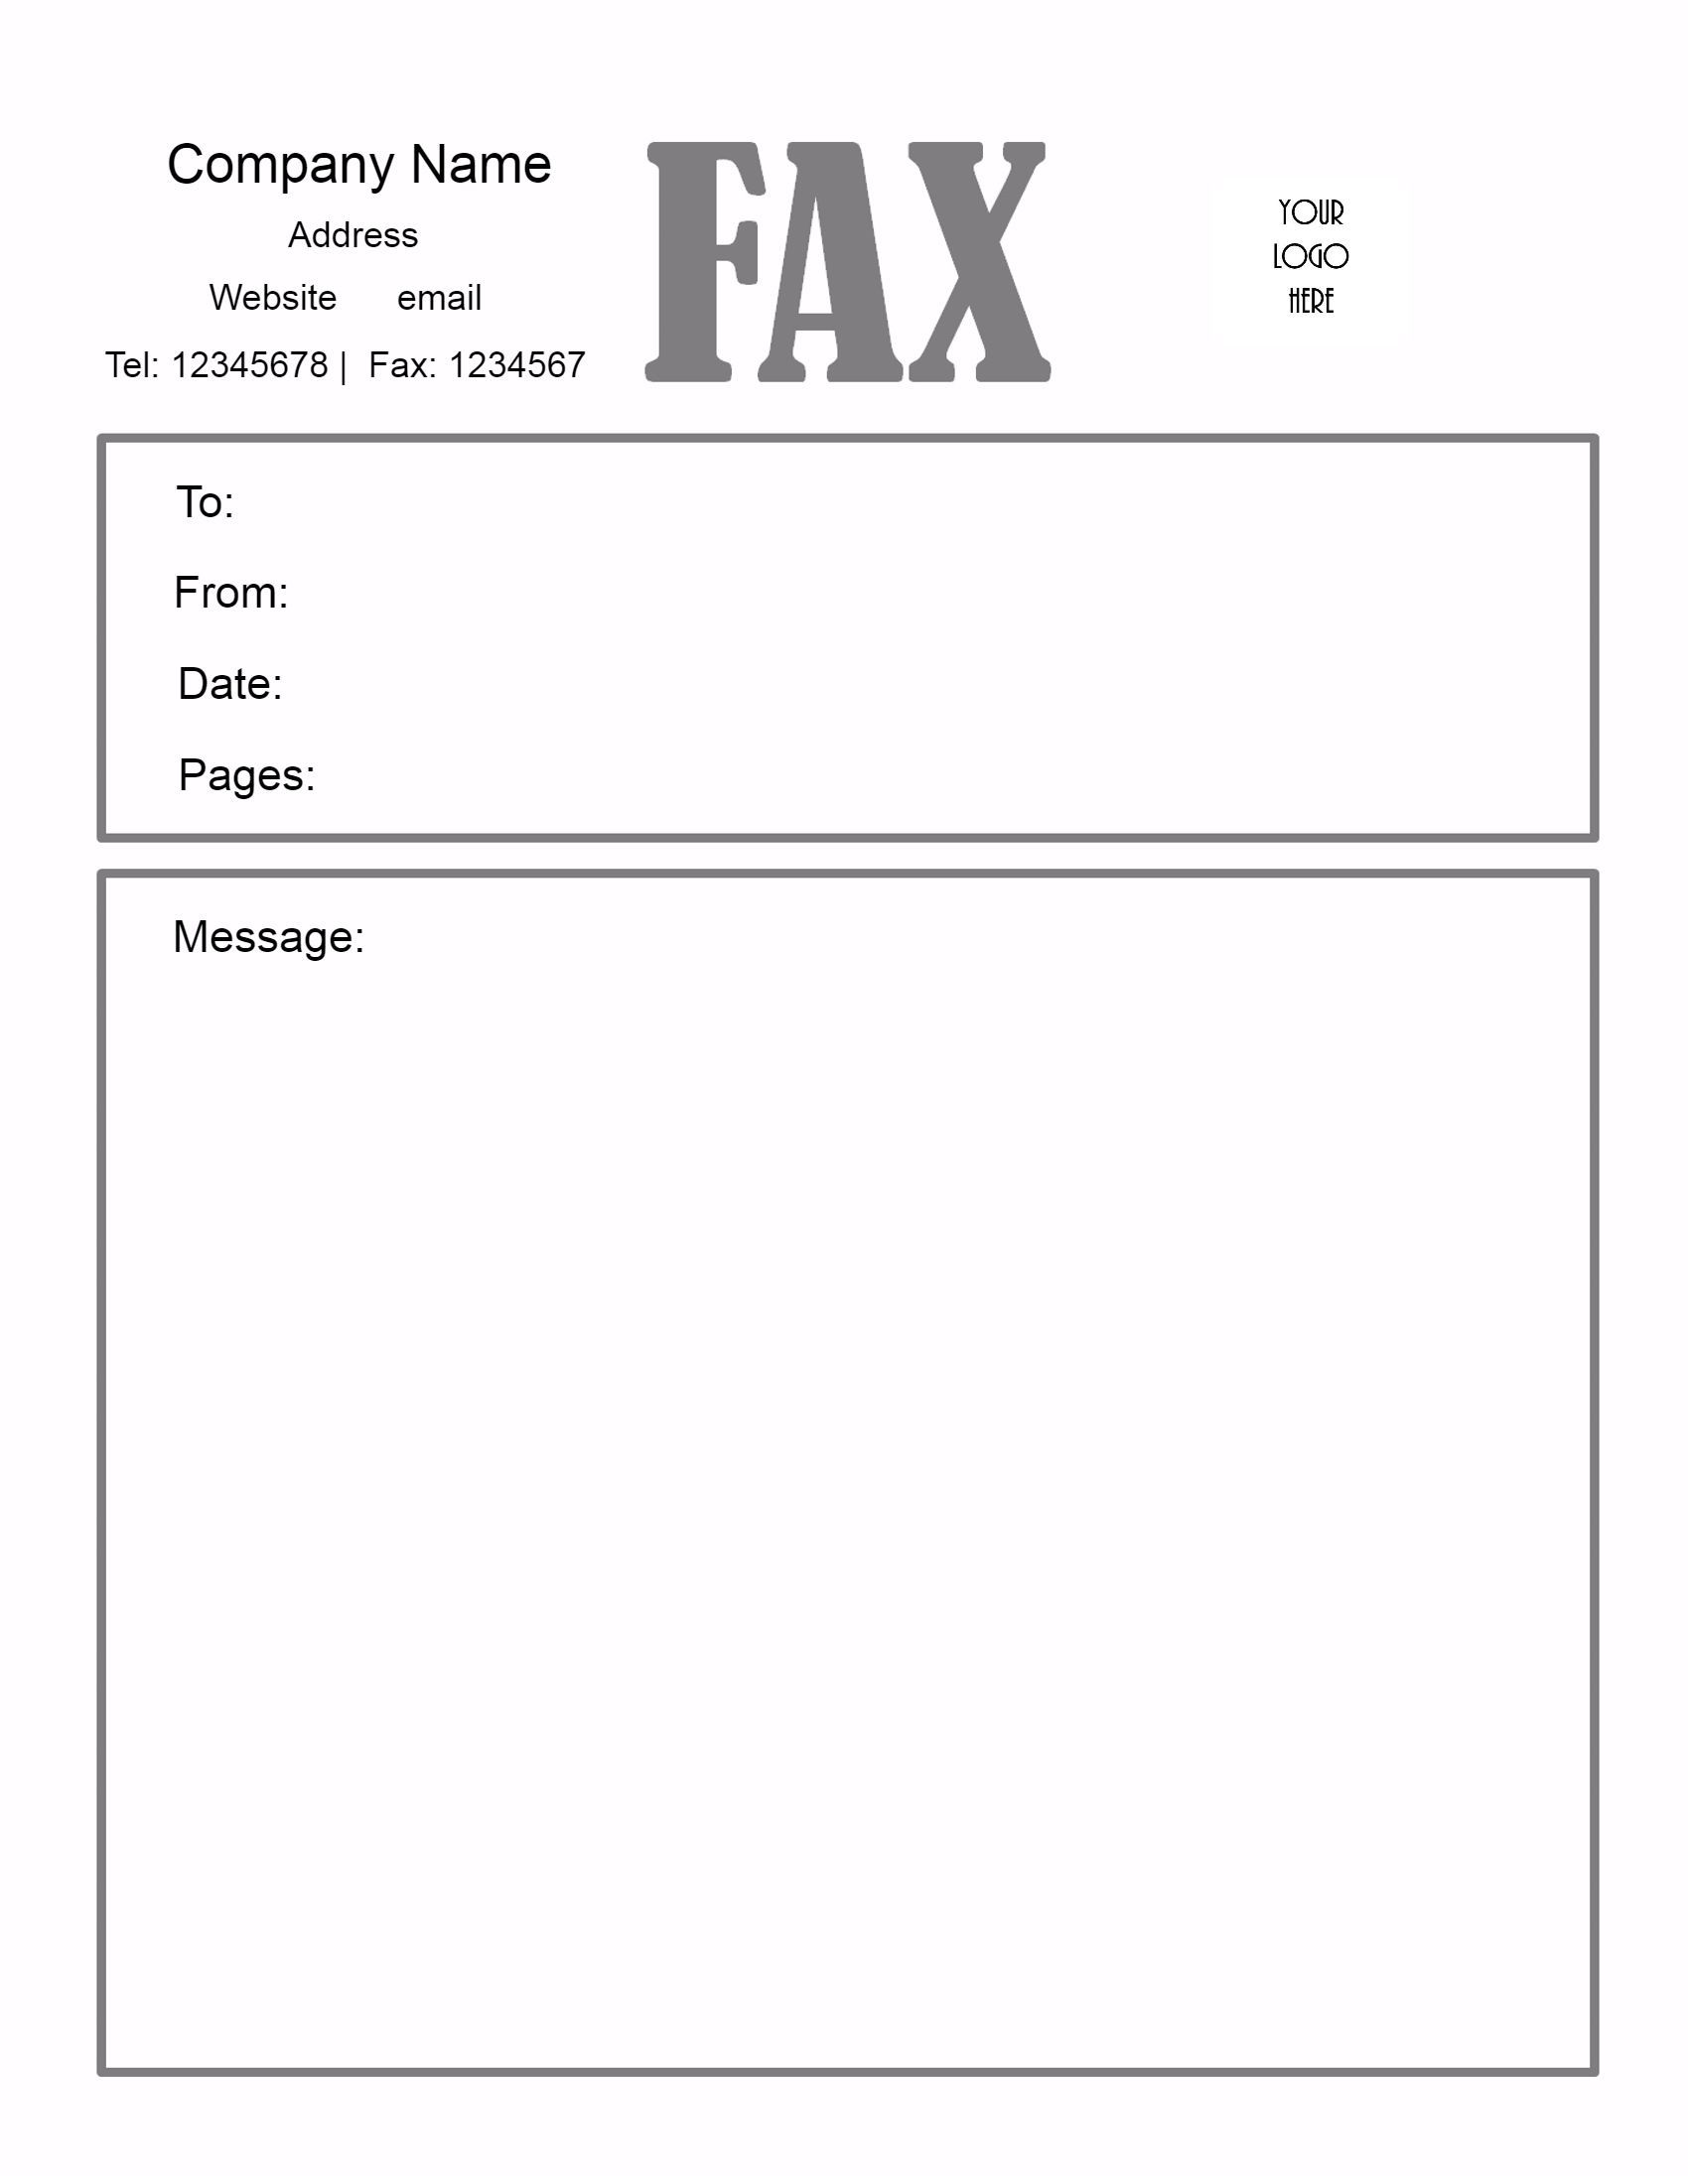 Business fax cover letter cover letter template cover